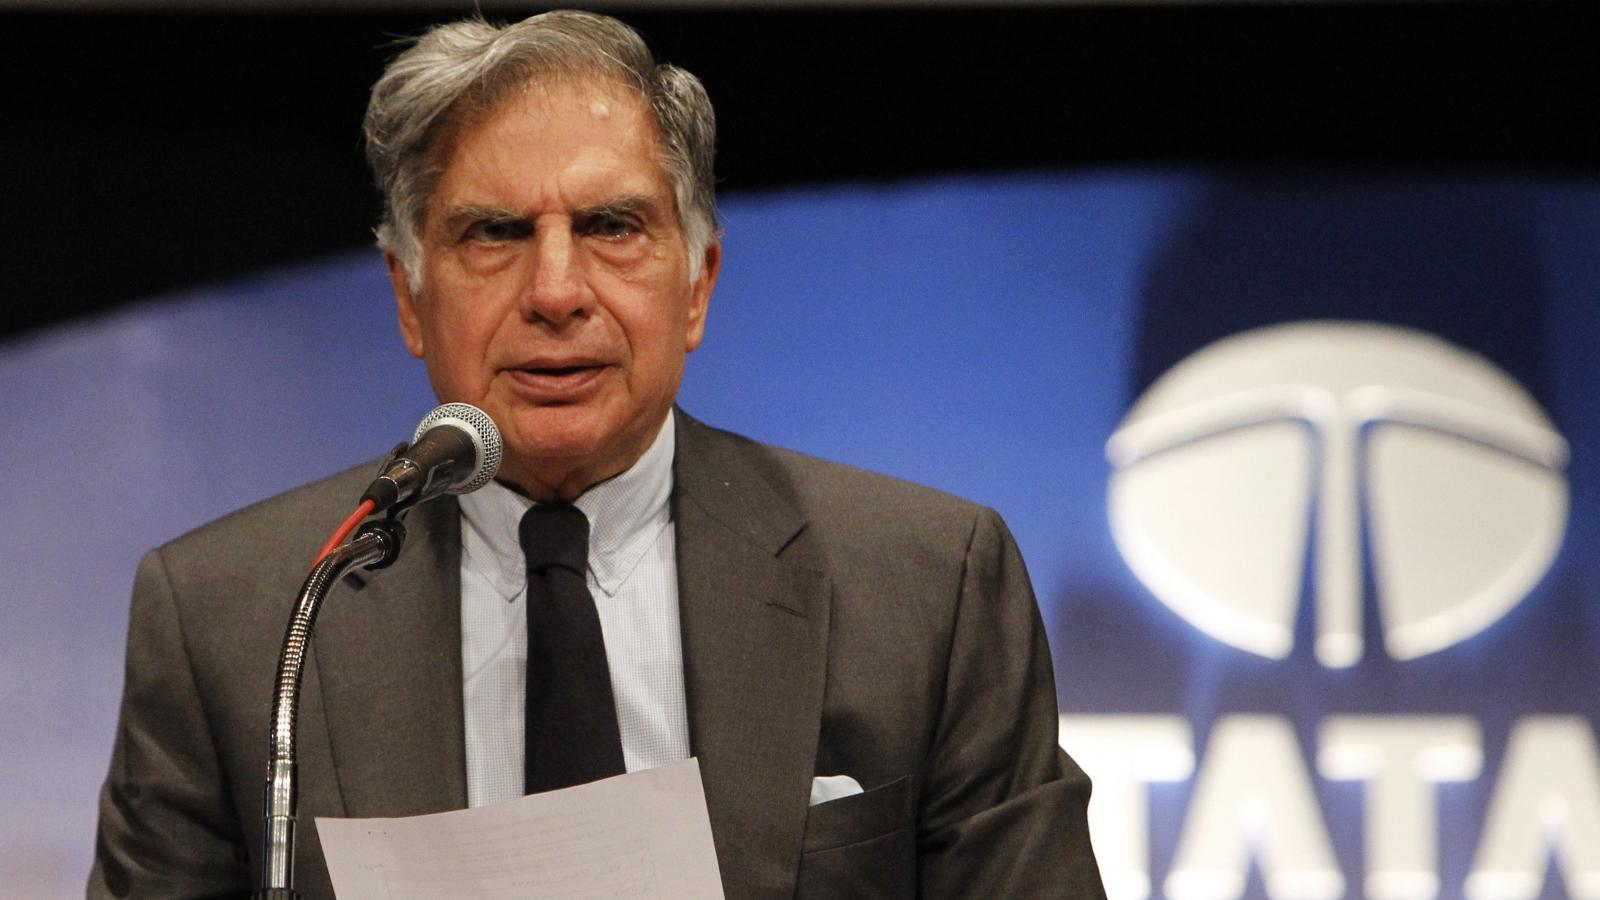 Ratan Tata can't help mentoring entrepreneurs even on Instagram — Quartz  India